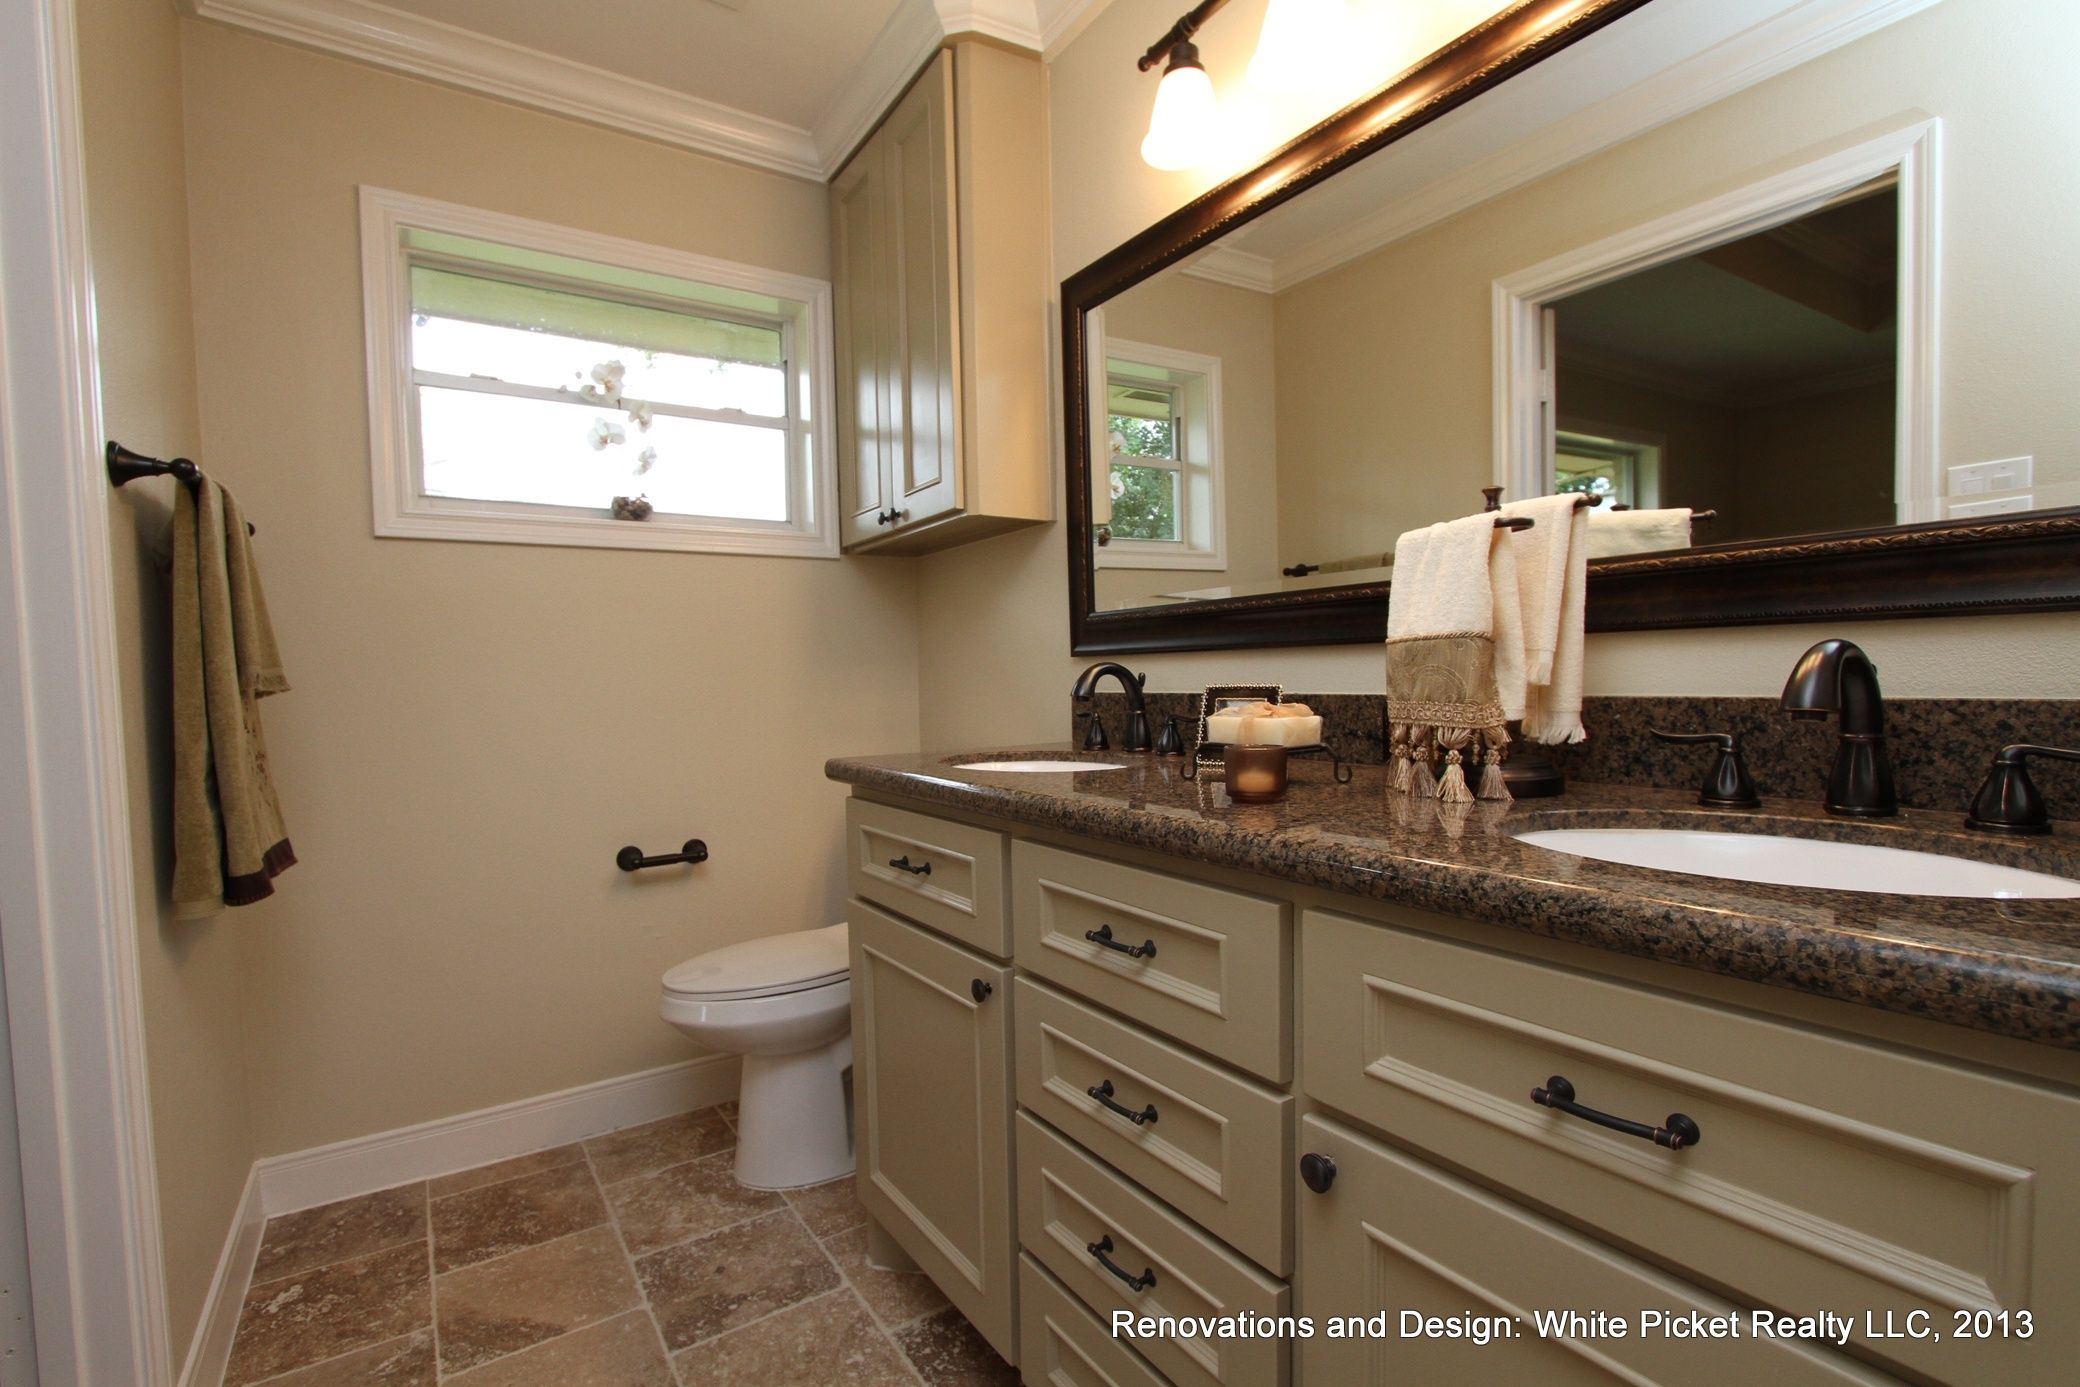 His and hers bathroom sink 28 images his and hers for His hers bathroom decor